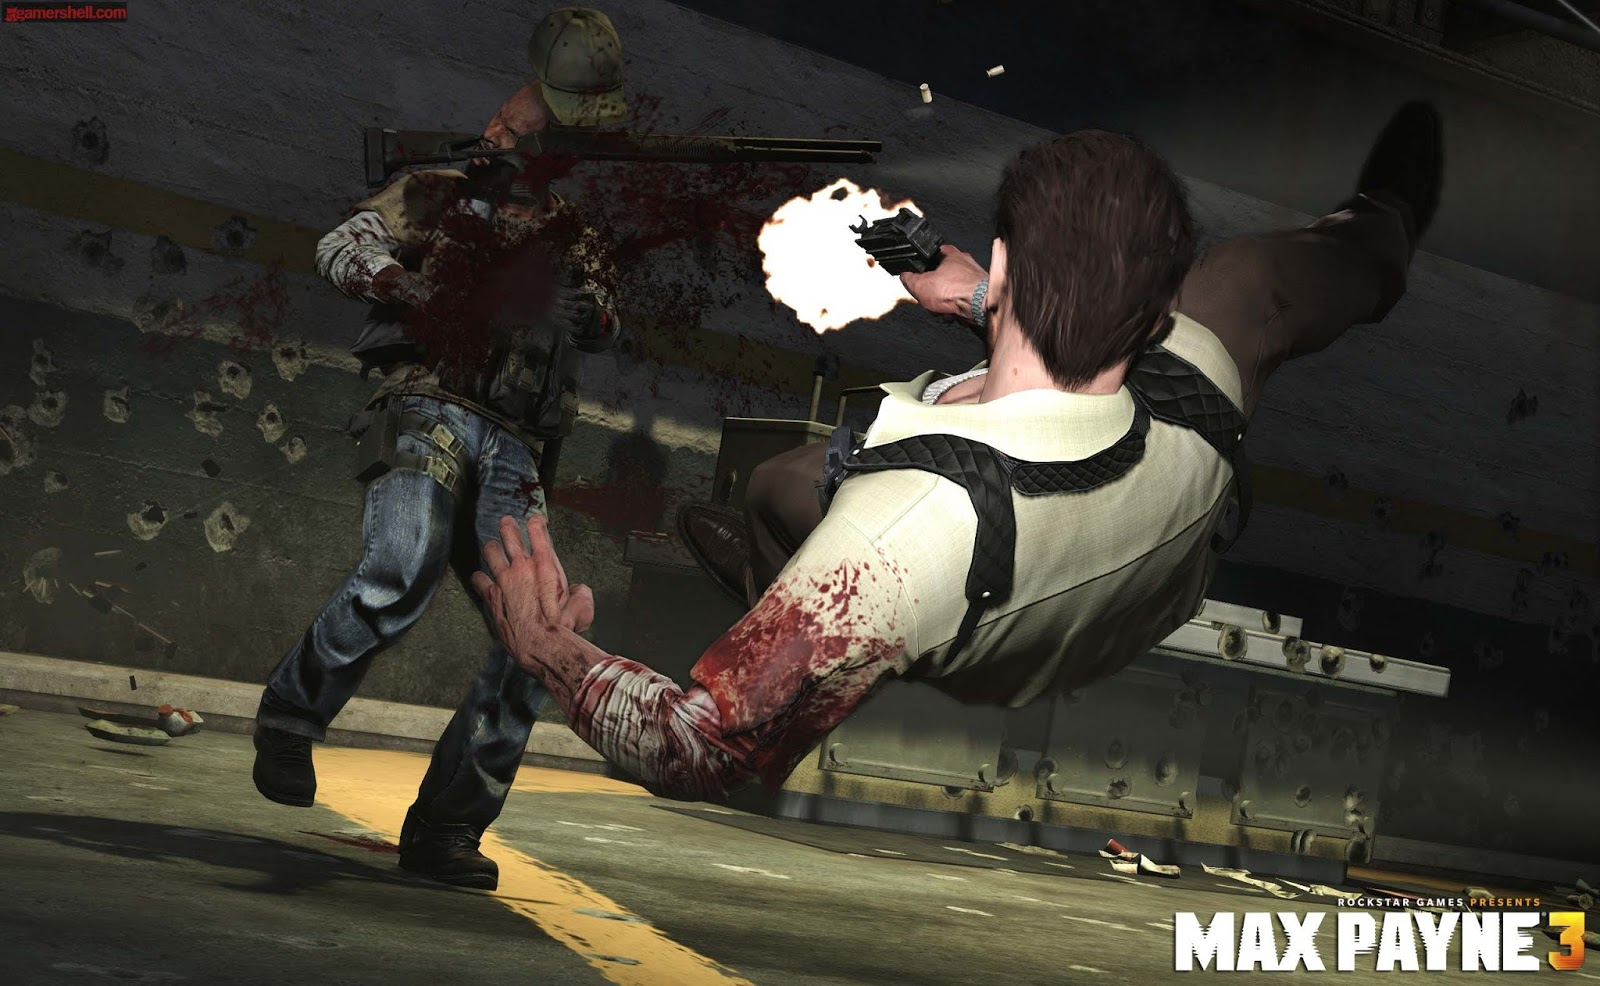 Max-Payne-3-Screenshots-Gameplay-1